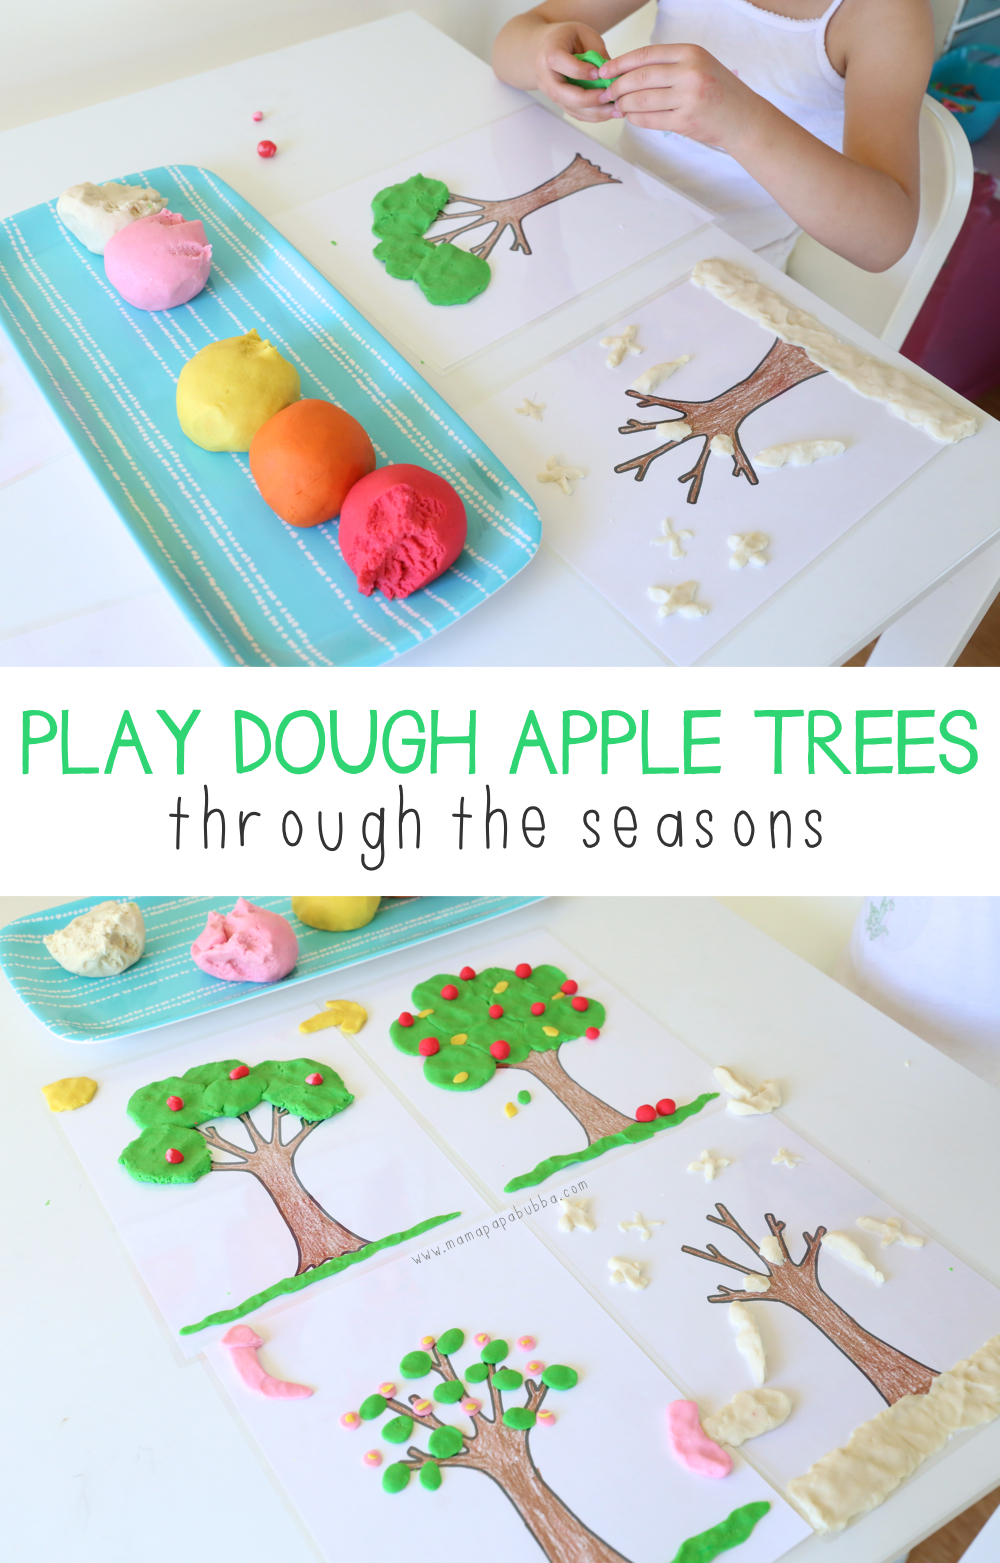 play-dough-apple-trees-through-the-seasons-mama-papa-bubba